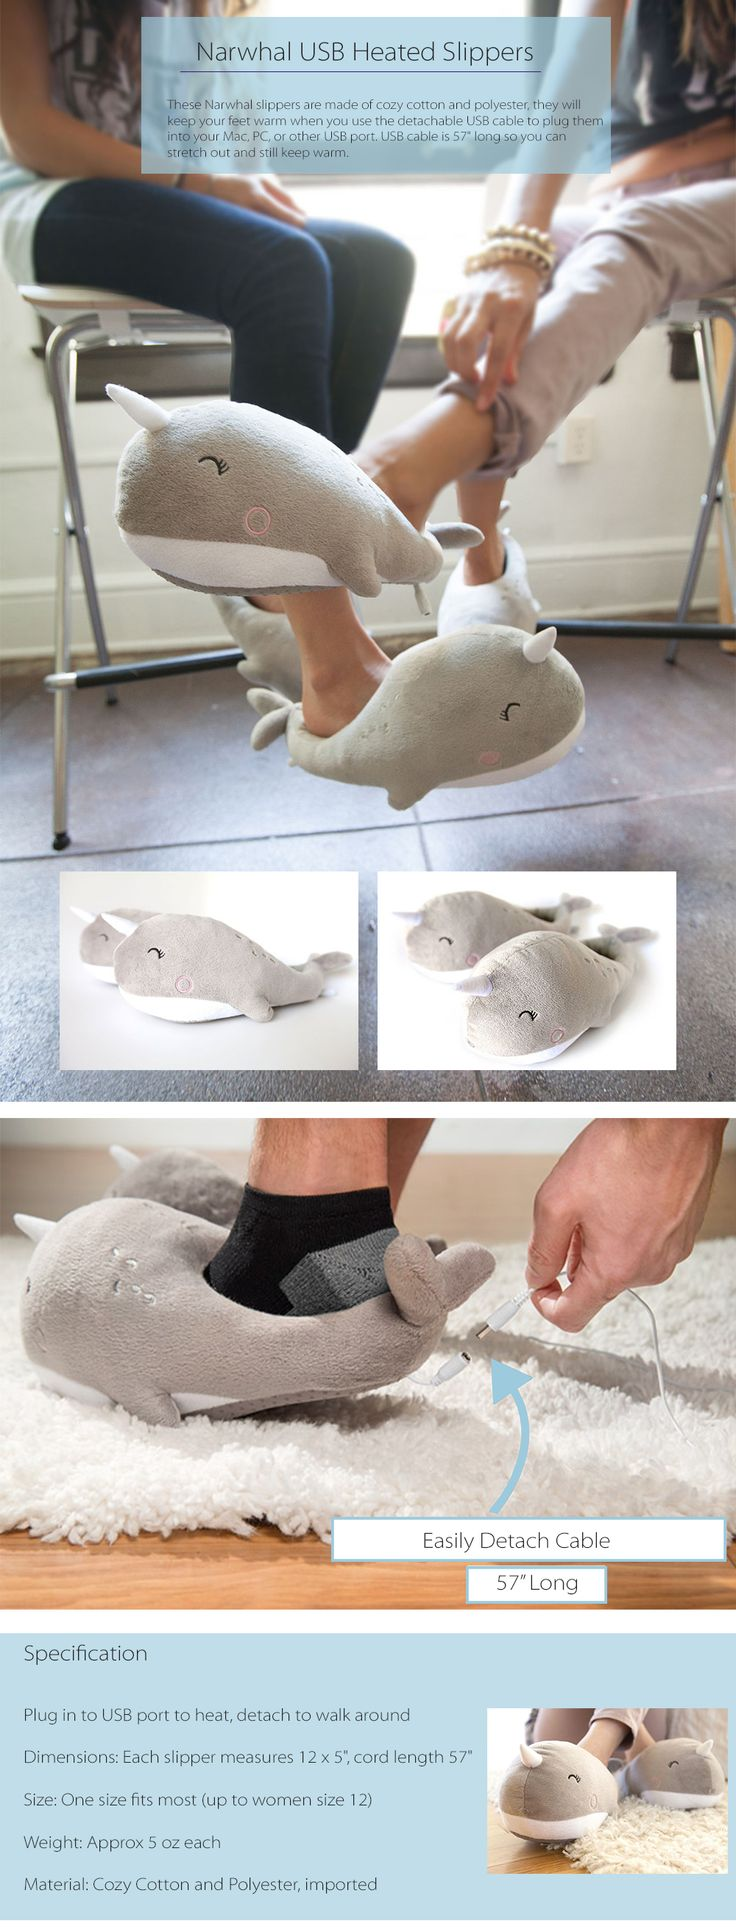 Narwhal USB Heated Slippers Perfect Gift For Your Kids